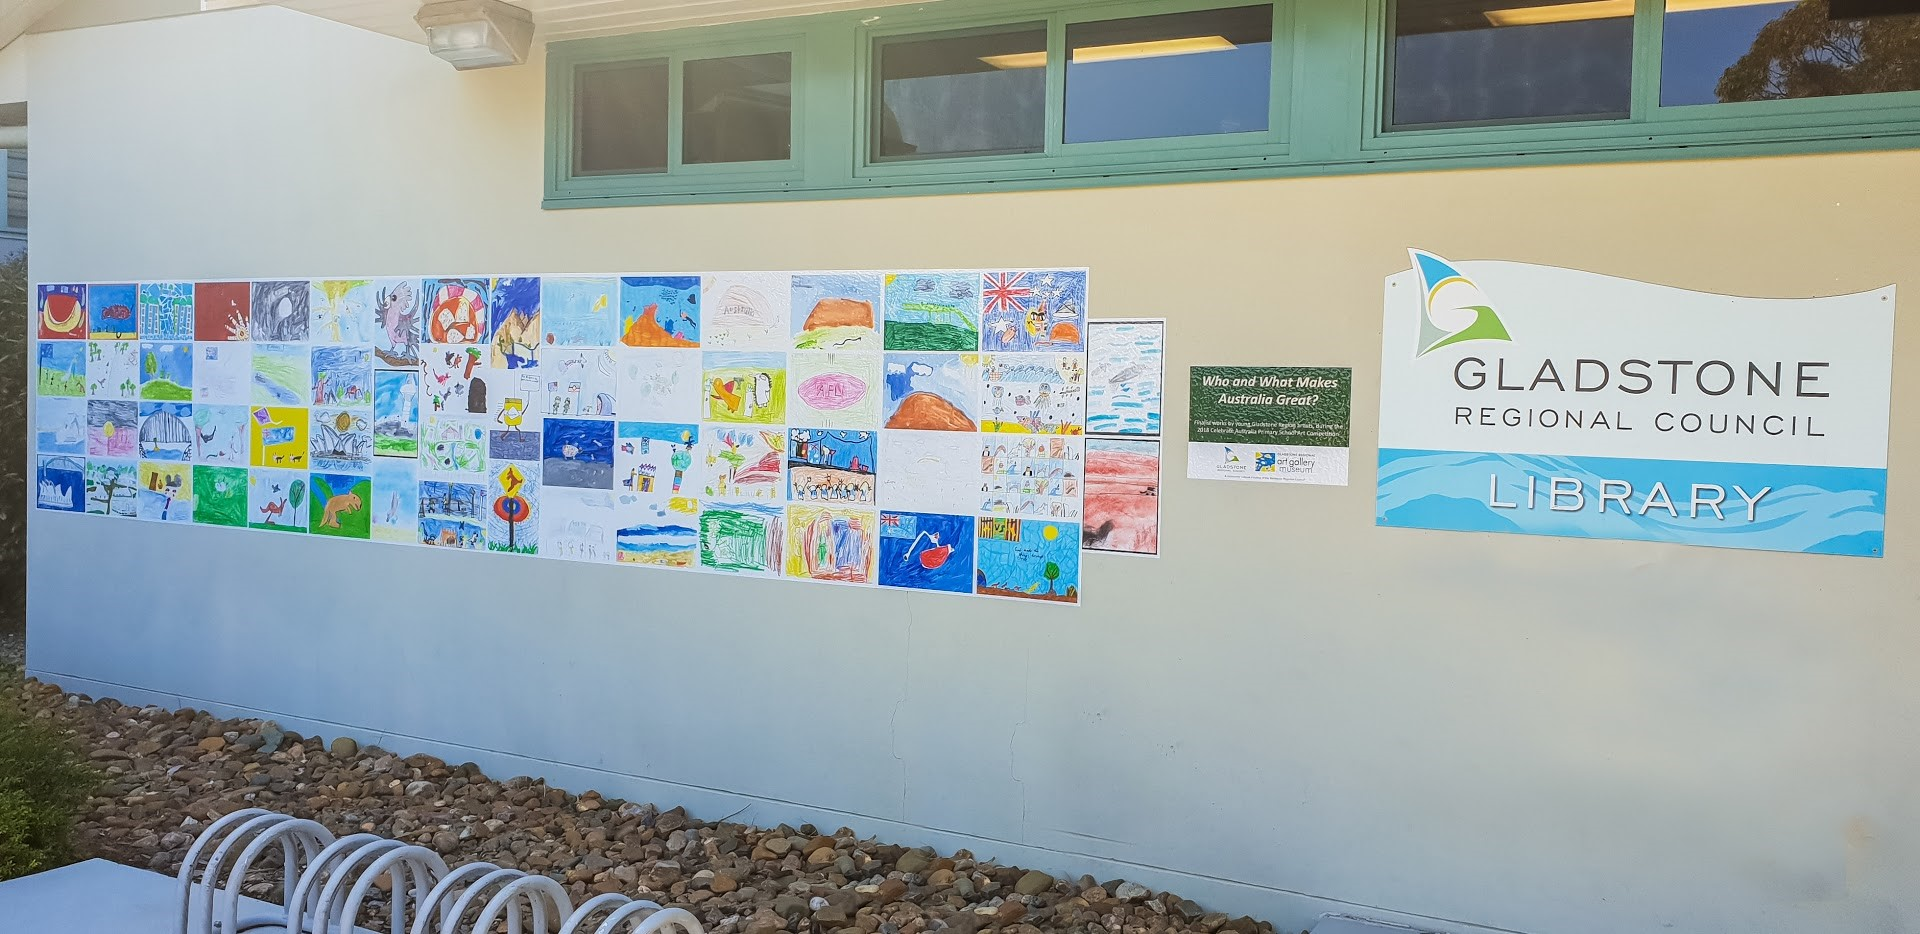 2018 Celebrate Australia Primary School Art Competition, pop up public art installation, Agnes Water Library  (Image: Kim Cooke Photography)